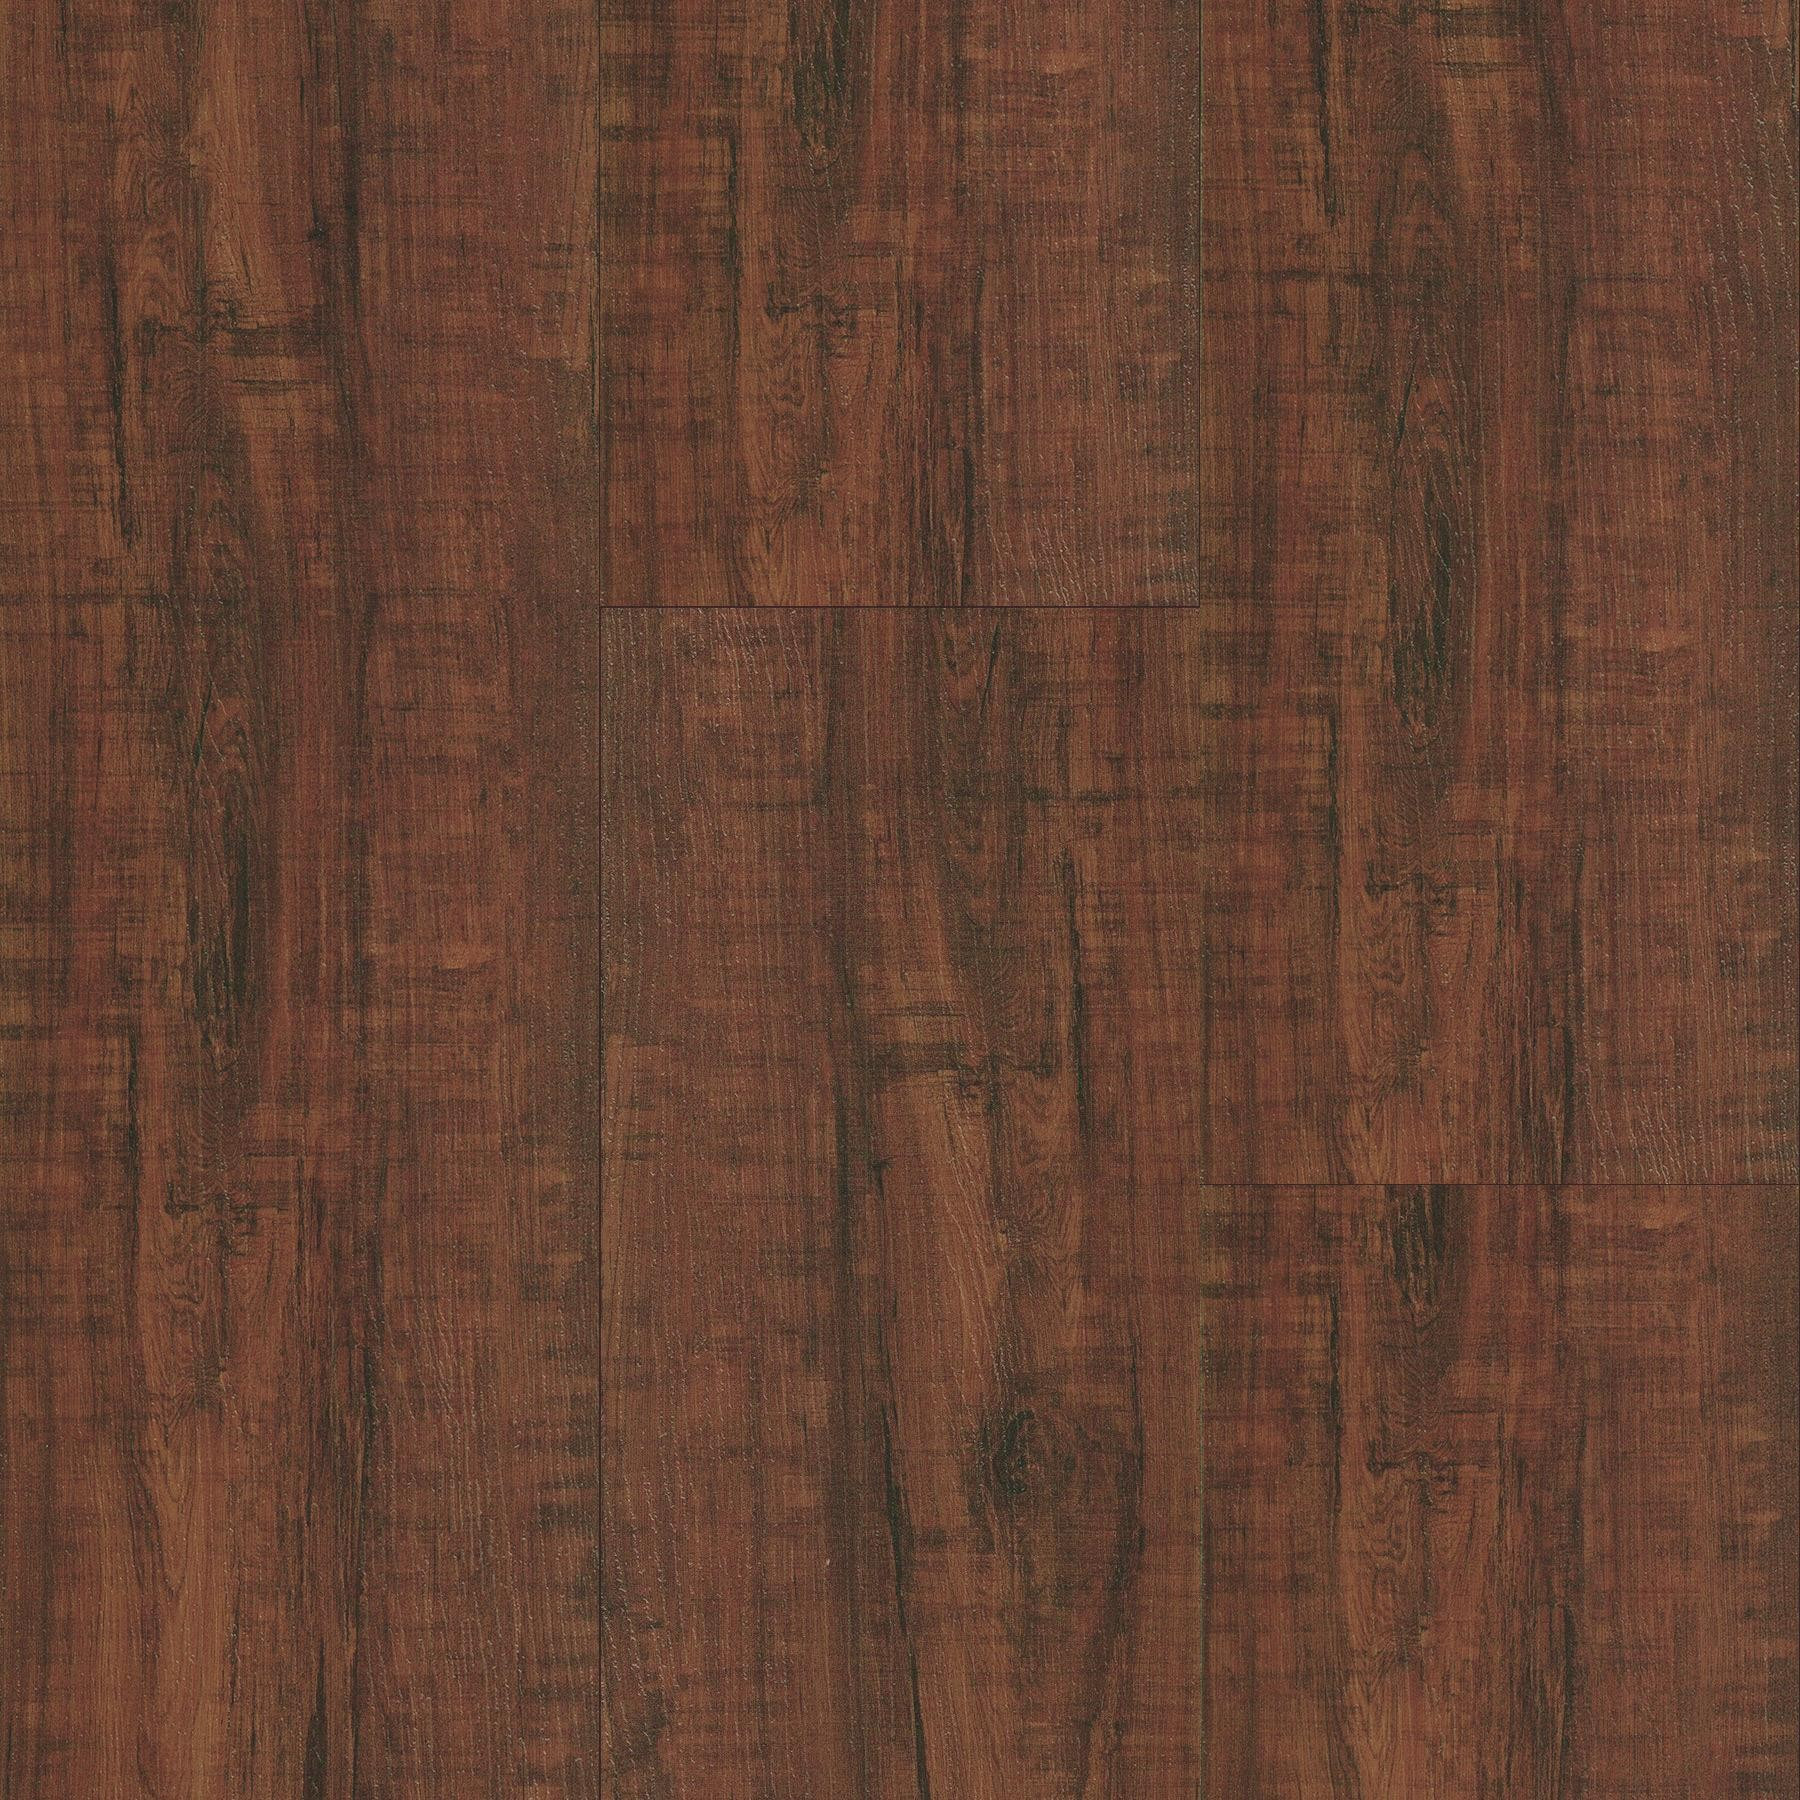 underlayment for solid hardwood floors of 19 awesome pergo vs hardwood pics dizpos com regarding pergo vs hardwood new 8mm laminate flooring photos of 19 awesome pergo vs hardwood pics